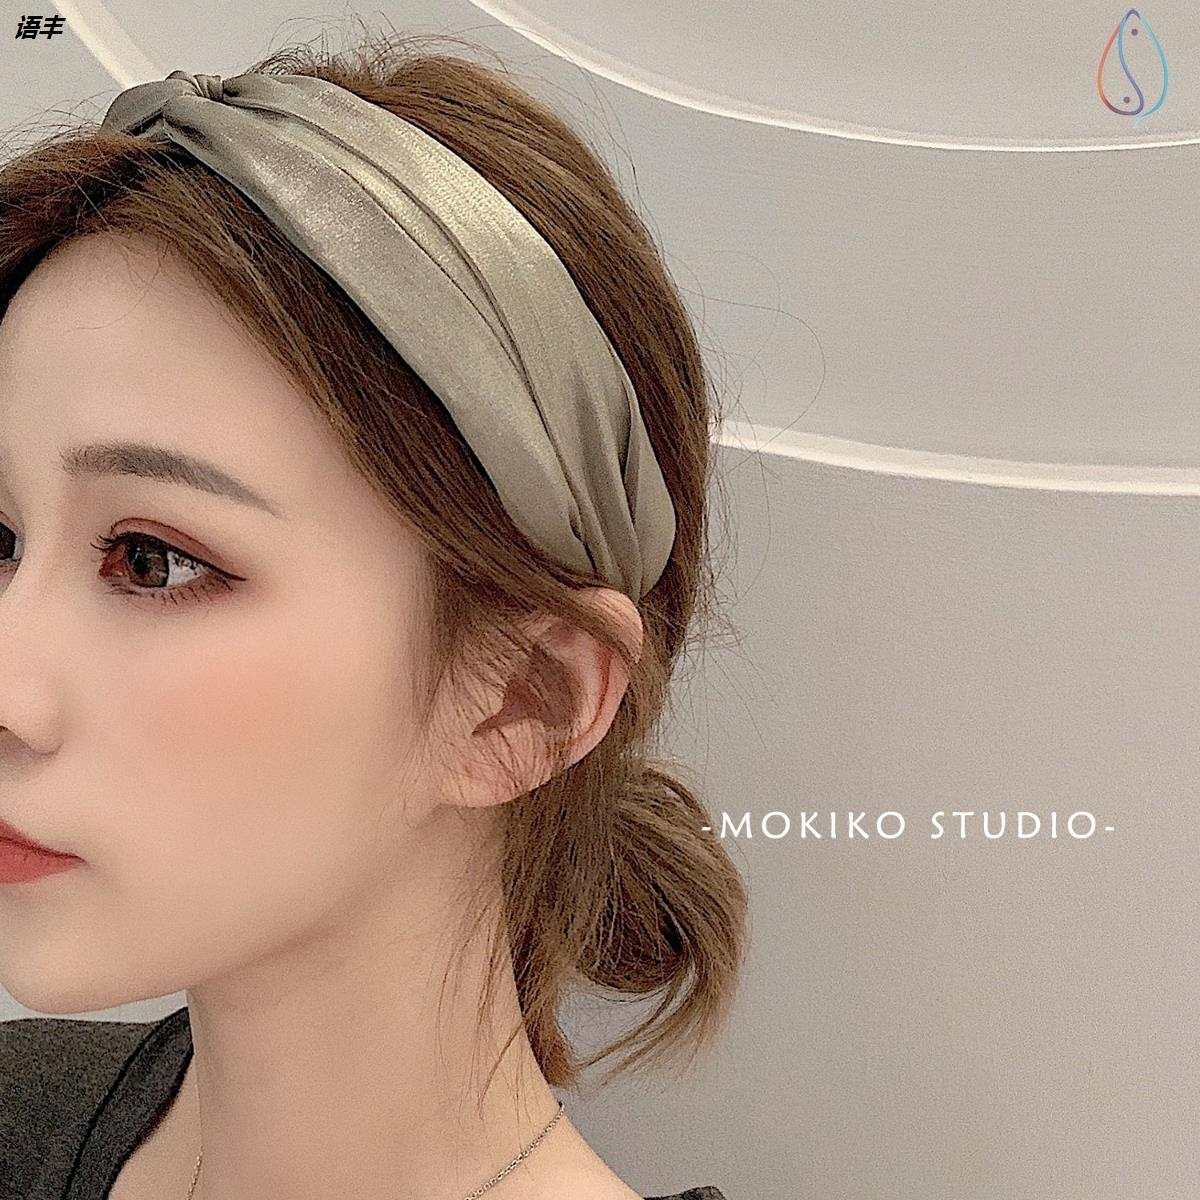 Rabbit ear hair hoop long hair ornament transition period hair care artifact combing and finishing short hair embarrassing period